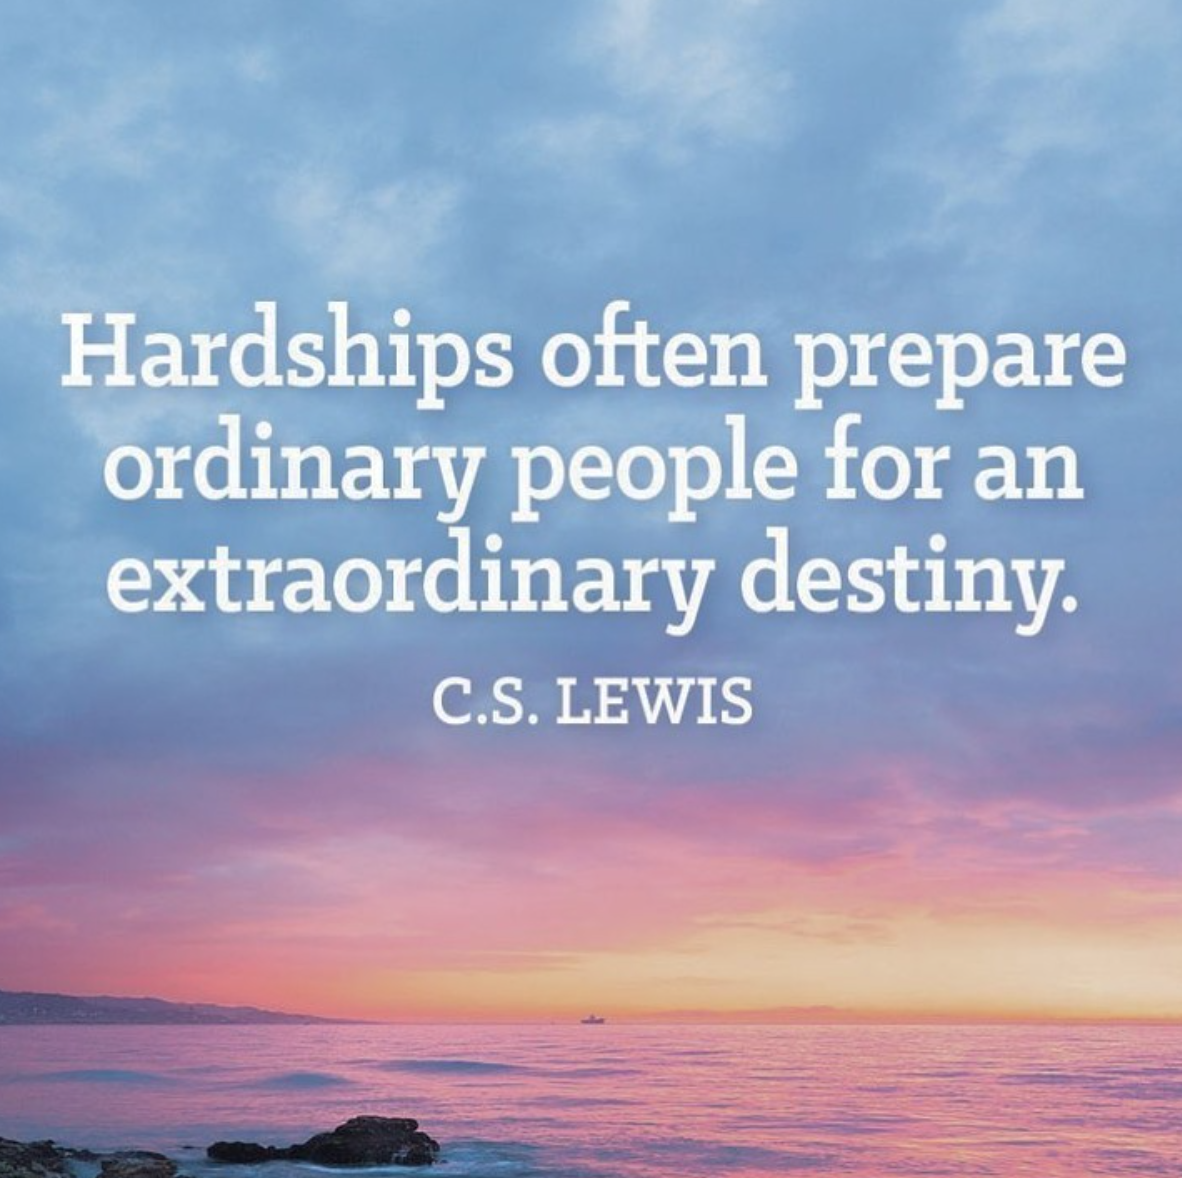 [Image] Hardships often prepare ordinary people for an extraordinary destiny